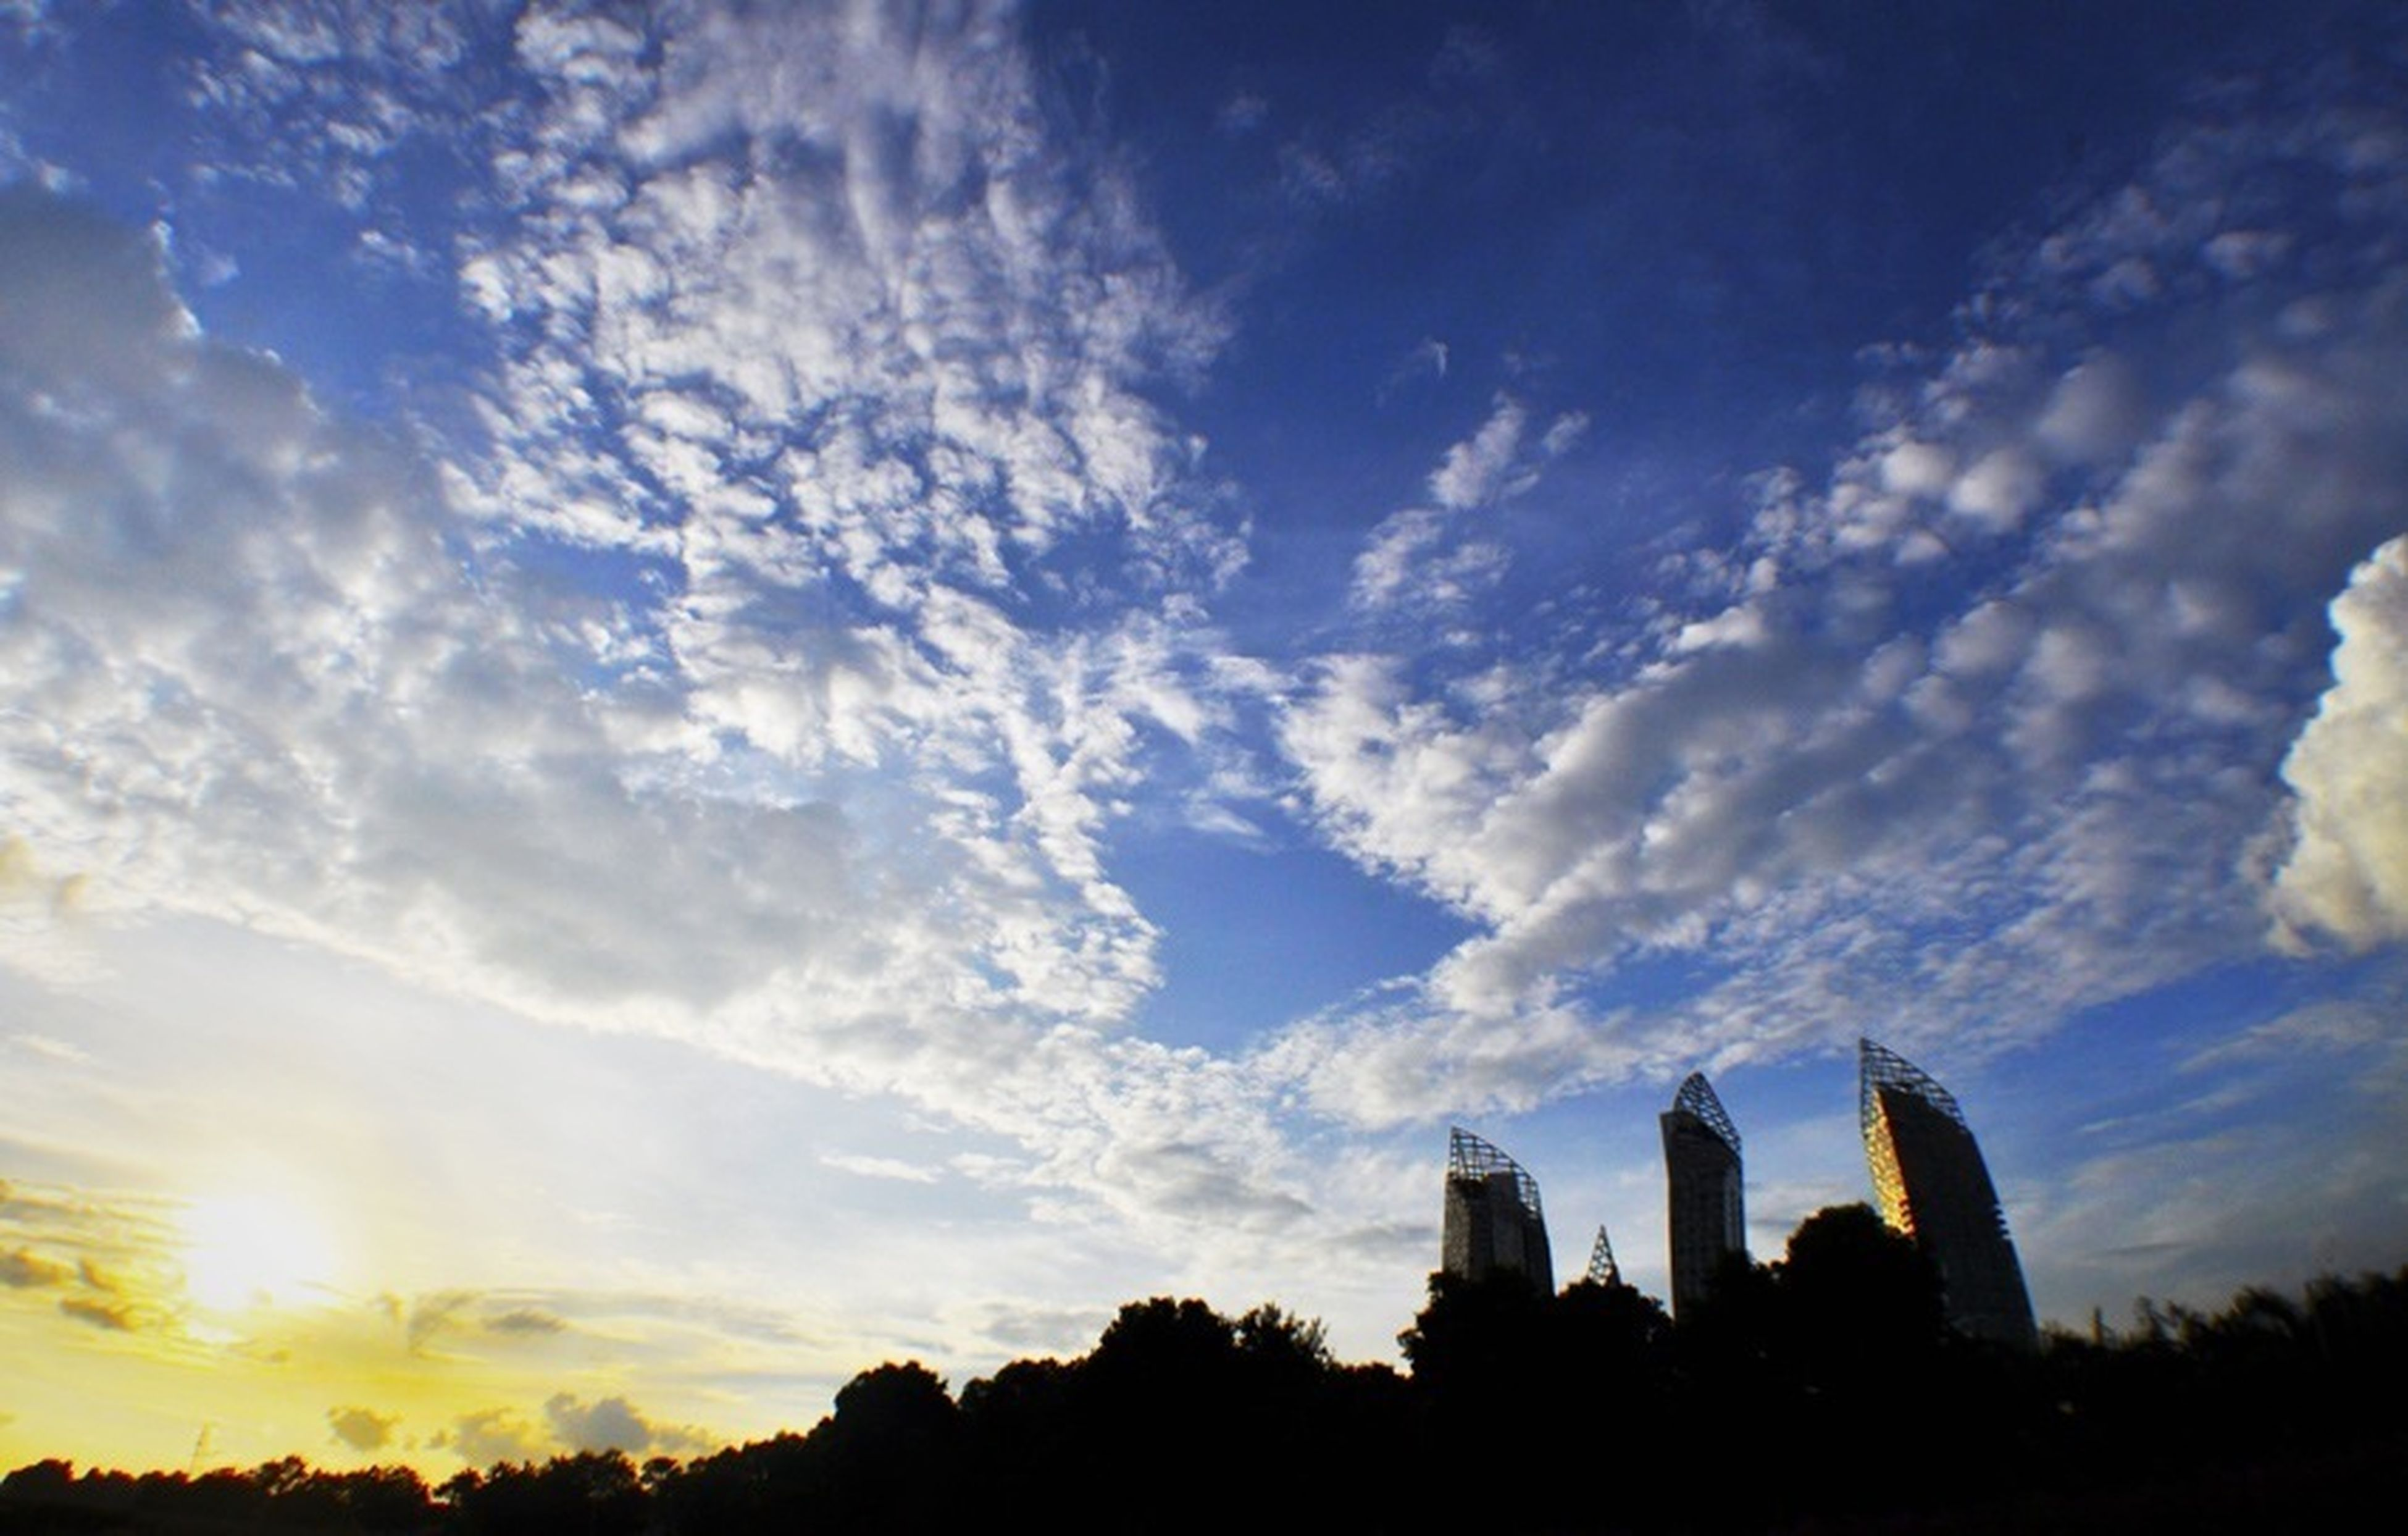 silhouette, architecture, building exterior, built structure, sky, cloud - sky, low angle view, sunset, city, cloud, tree, outdoors, no people, skyscraper, nature, tower, cloudy, dusk, scenics, beauty in nature